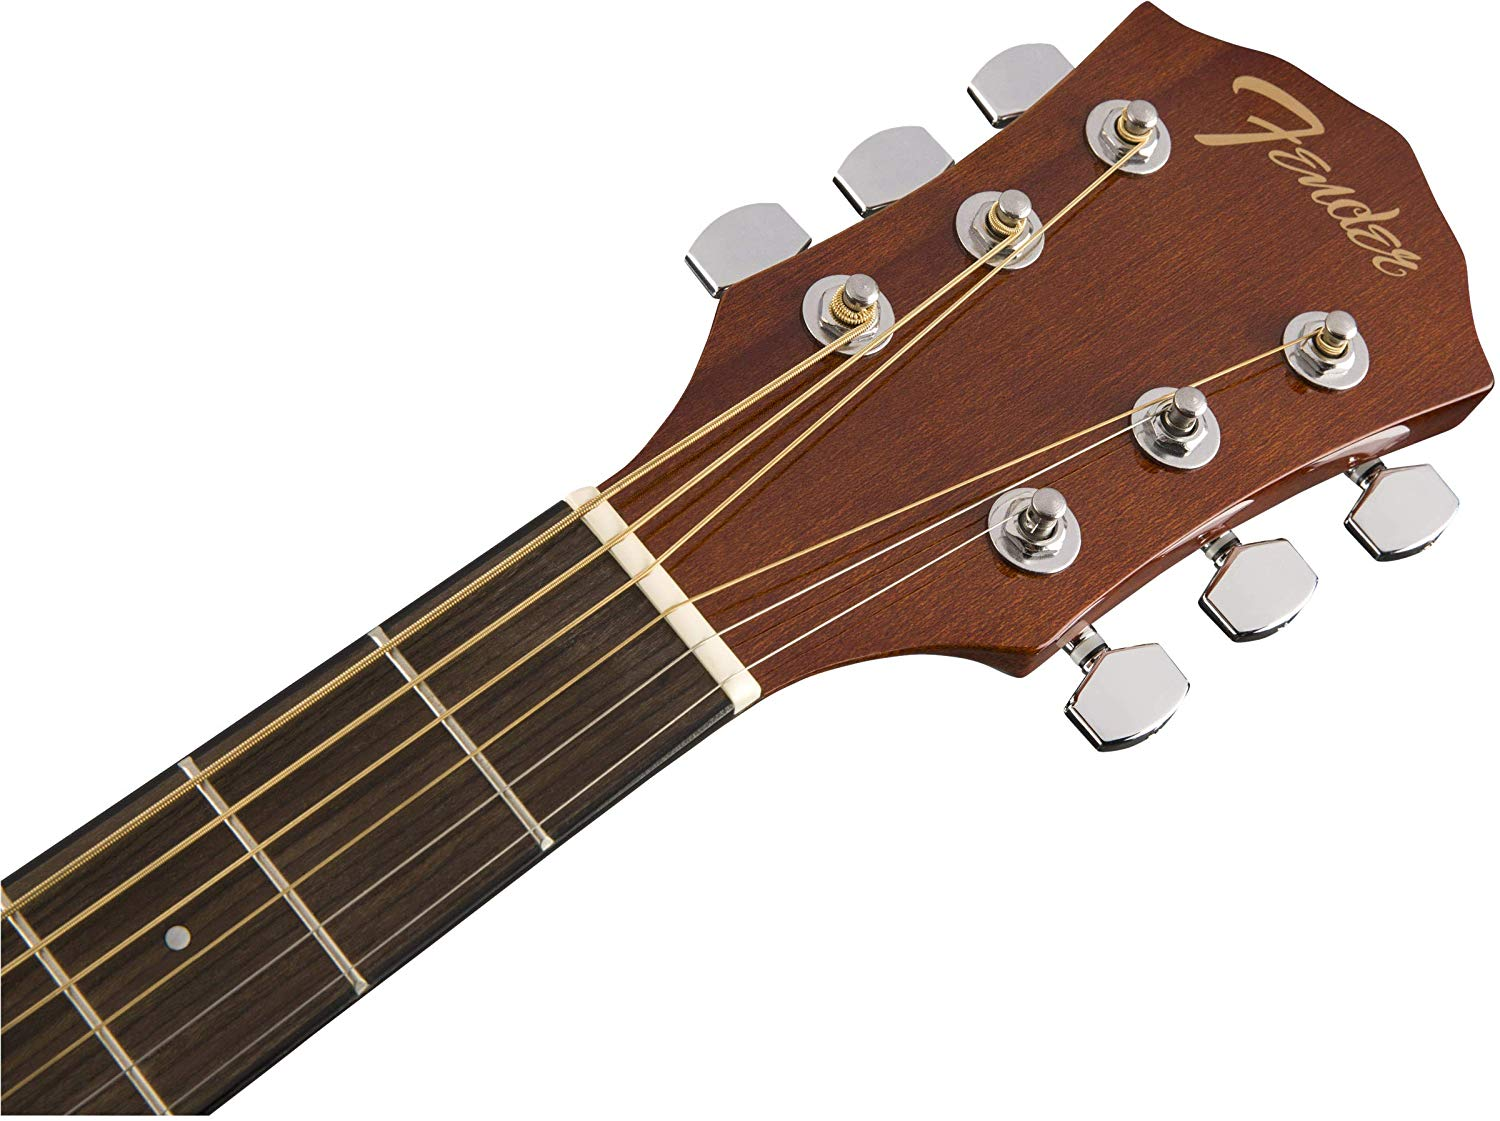 Close-up of the Neck and Head on the Natural Fender FA-125CE Dreadnought Cutaway AEG